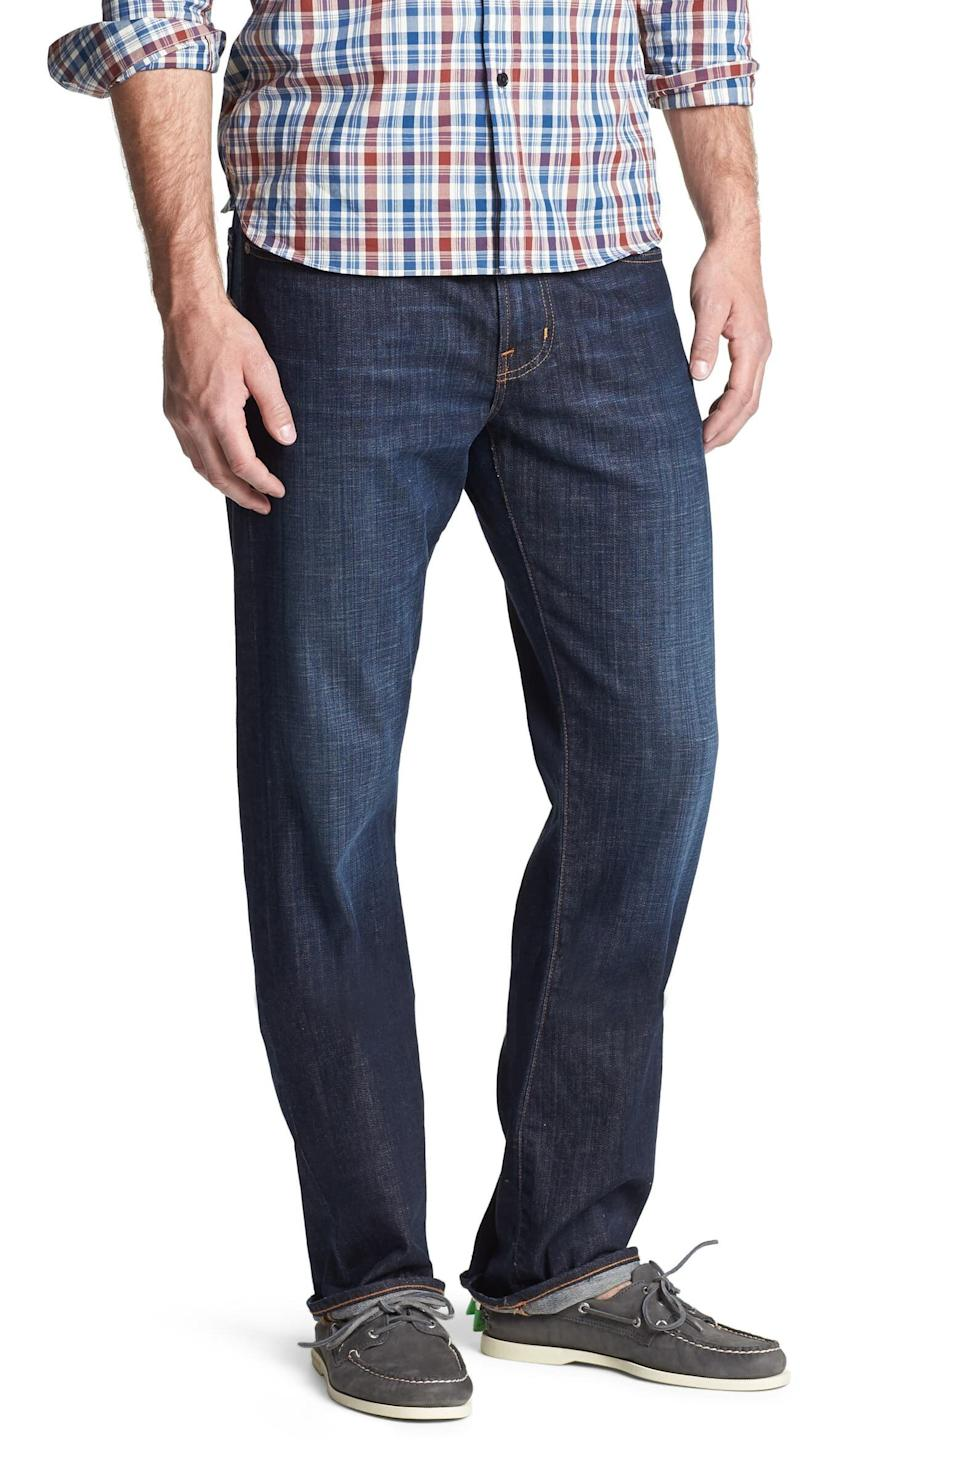 """AG's known for its denim, and these jeans are on the more expensive side. But you can rest a little easier knowing that this pairhas over 90 5-star reviews. <strong><a href=""""https://fave.co/2tLdI2j"""" target=""""_blank"""" rel=""""noopener noreferrer"""">Find this pair at Nordstrom</a></strong>."""